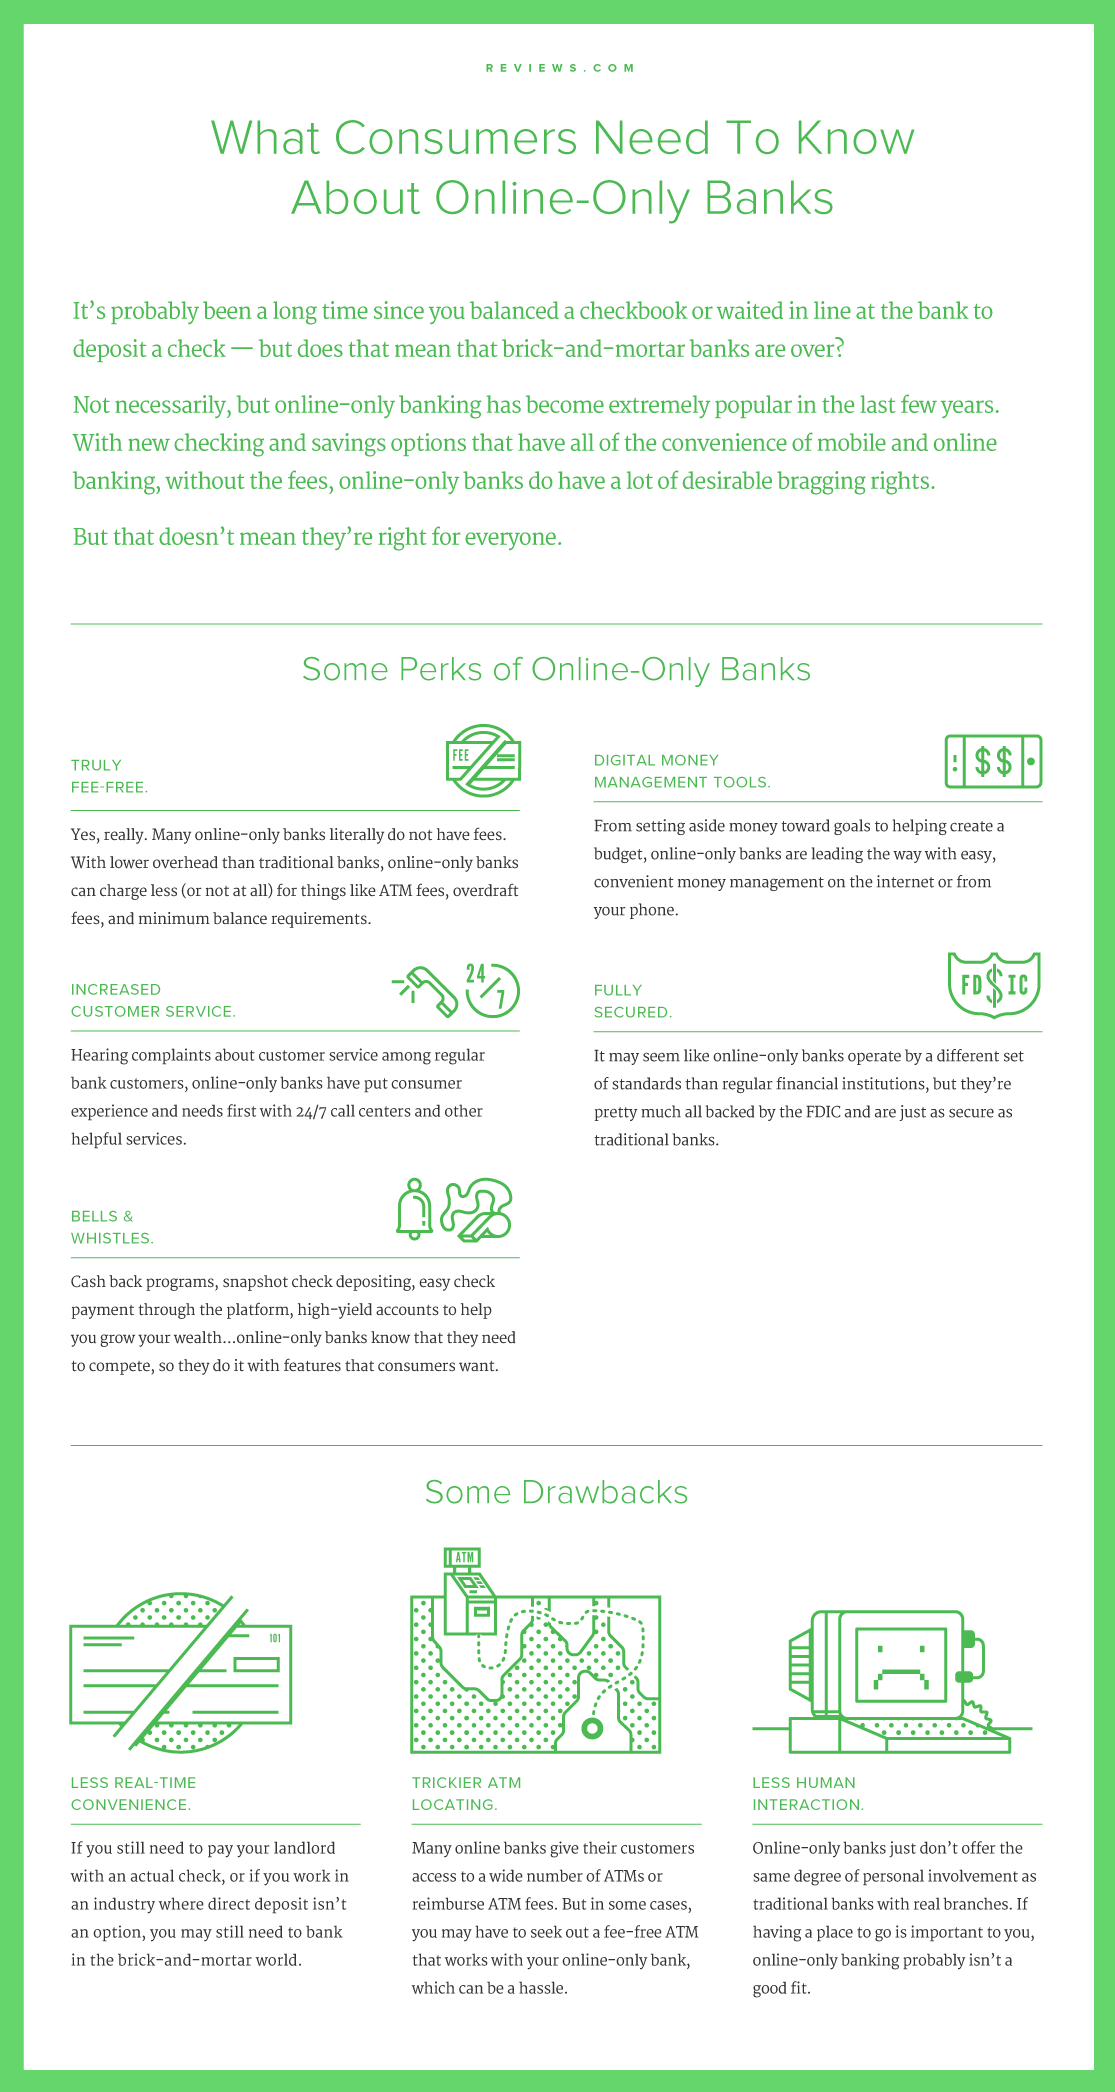 Criteria For Onlineonly Banks